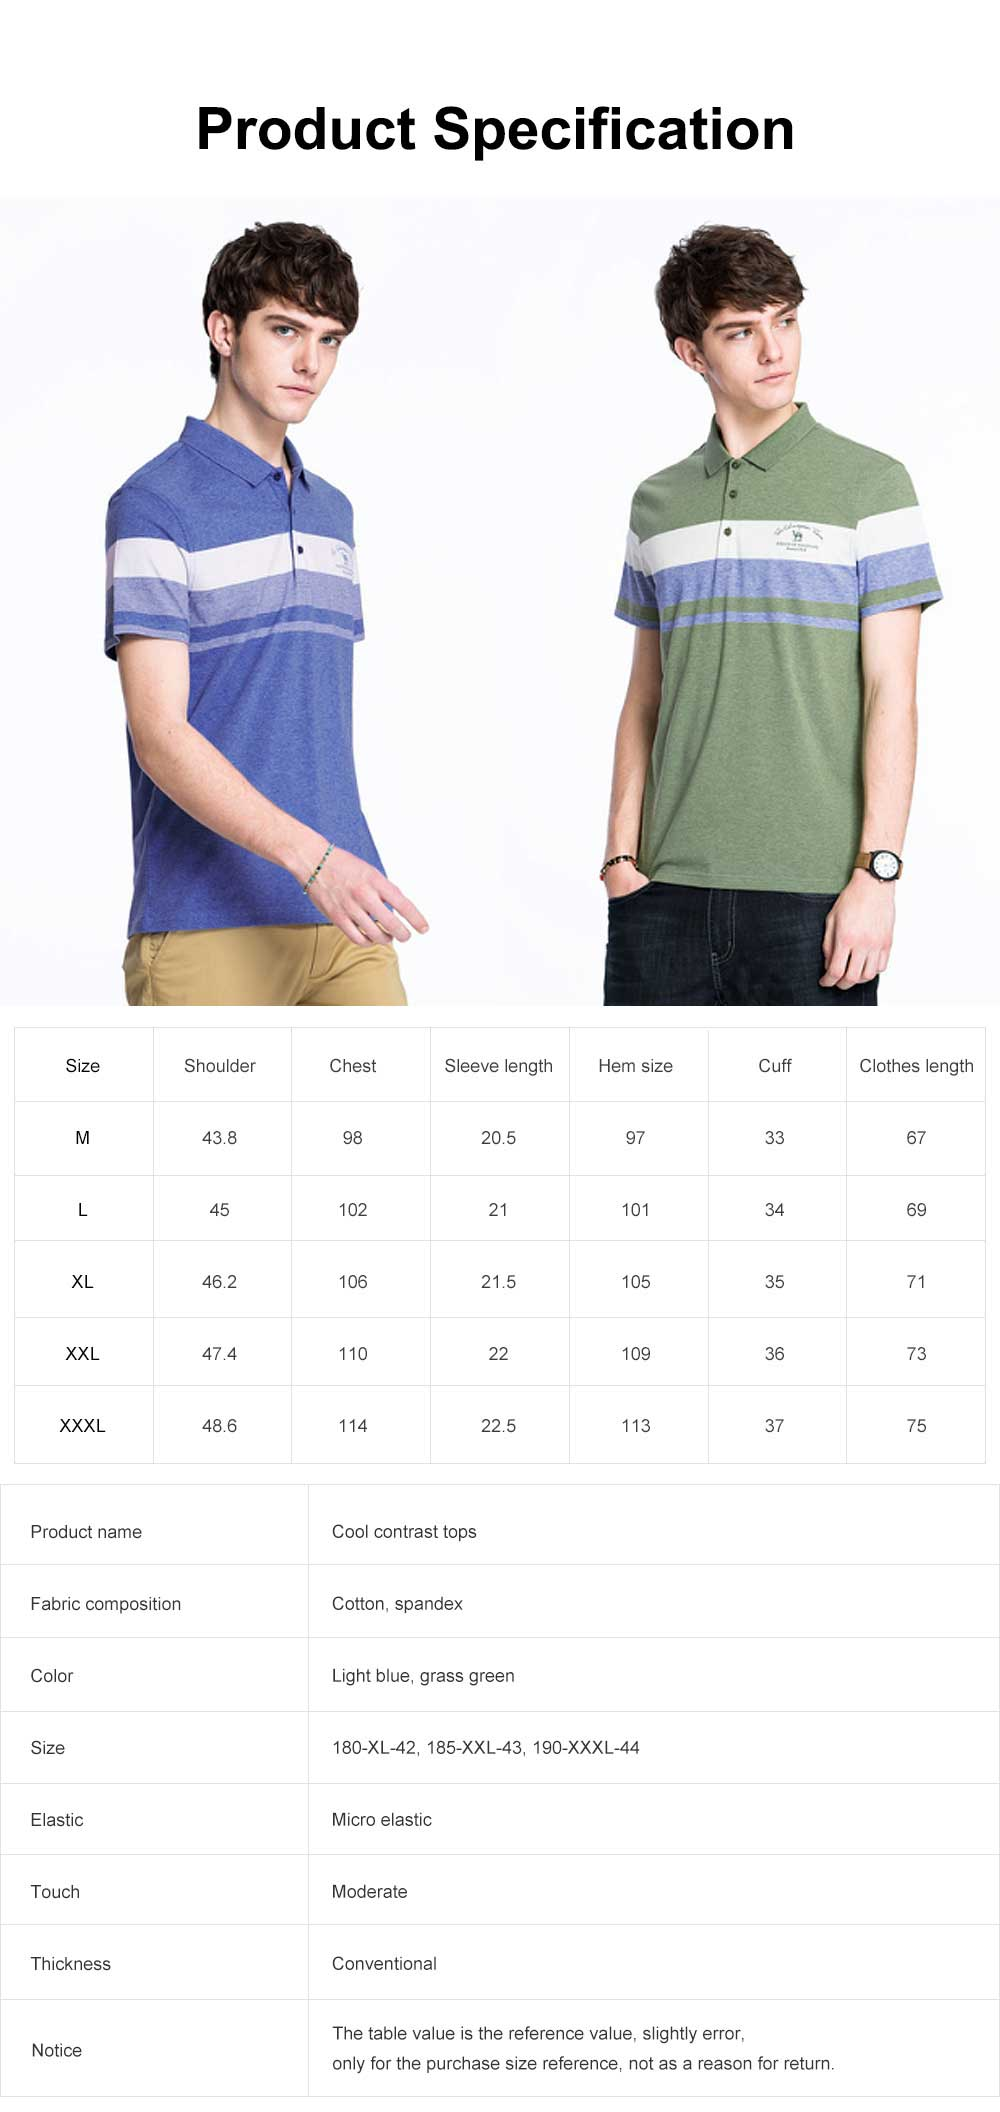 Cool Contrast Tops for Men, Recreational Edition Short-sleeve Polo, Breathable Spandex Cotton T-shirt 6